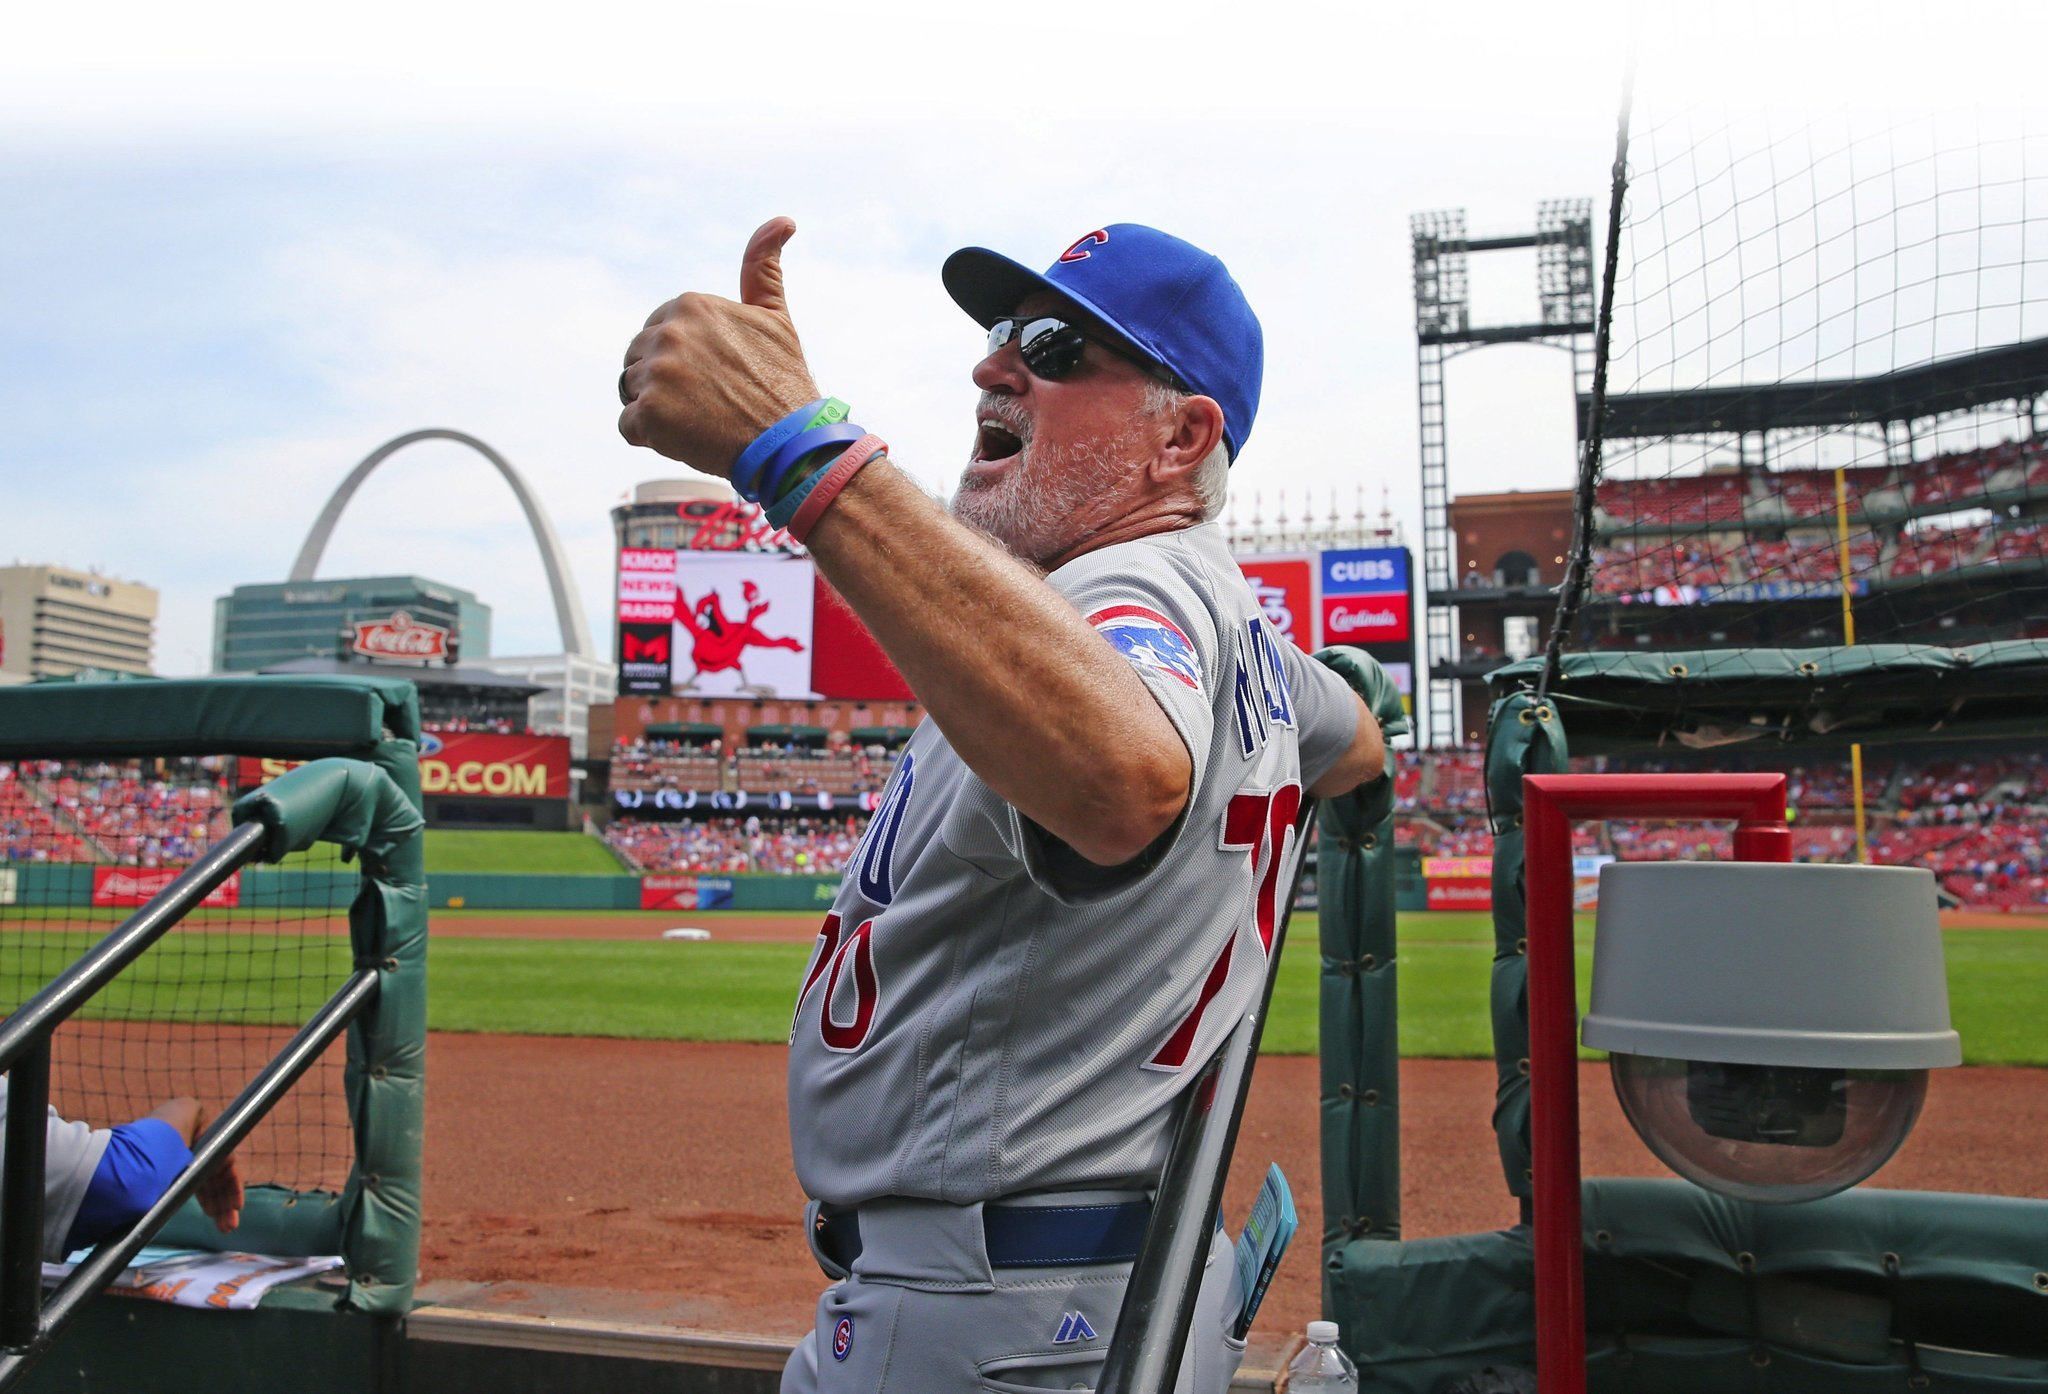 Ct-cubs-joe-maddon-managerial-style-spt-0930-20160929